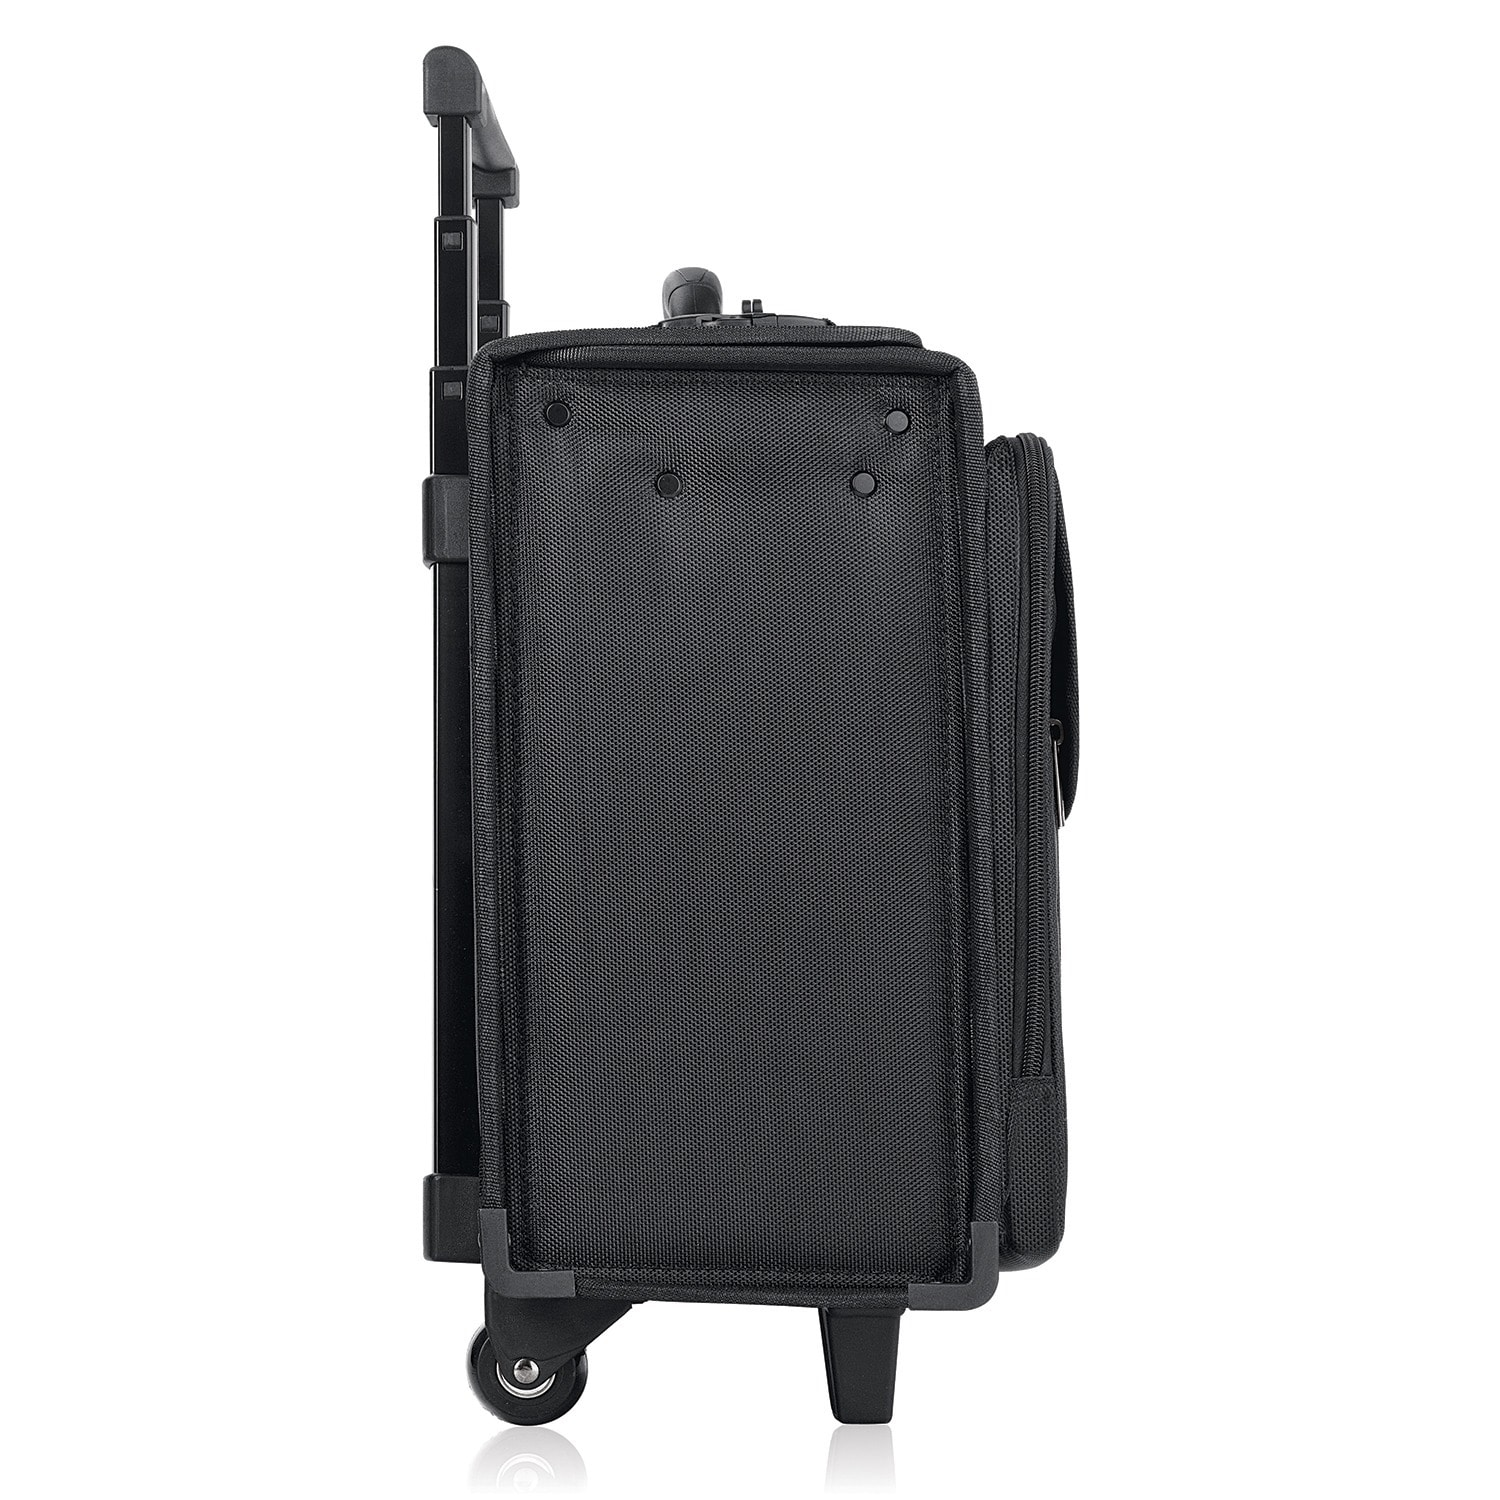 Shop Solo 17.3-inch Black Laptop Rolling Catalog Case with Hanging File  System - Free Shipping Today - Overstock.com - 3165944 22923367e6